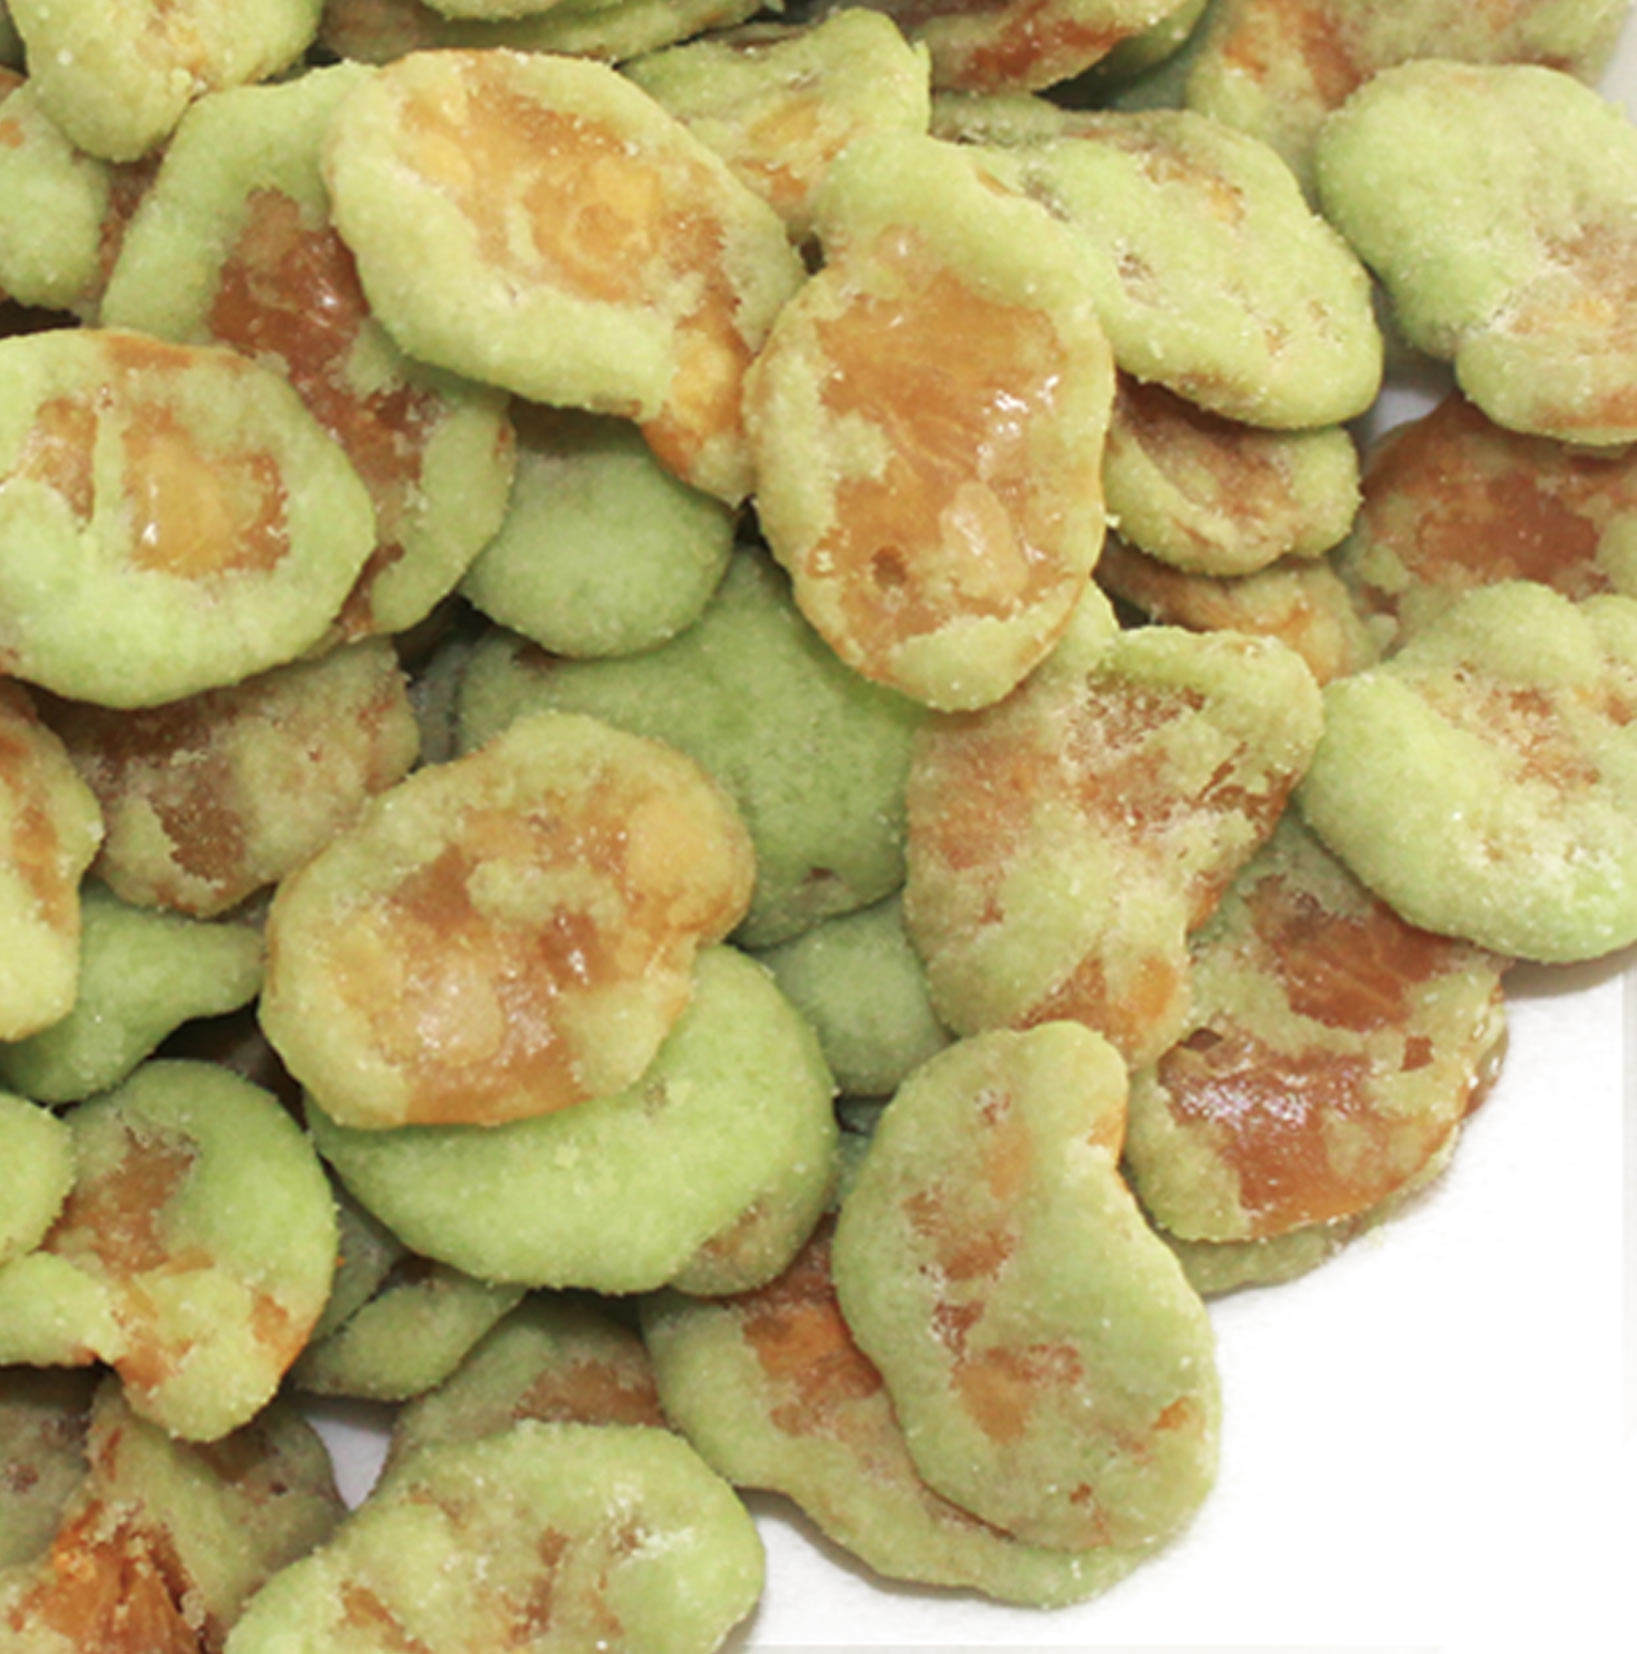 Leisure chips crunchy baking broad beans with seaweed snack for party